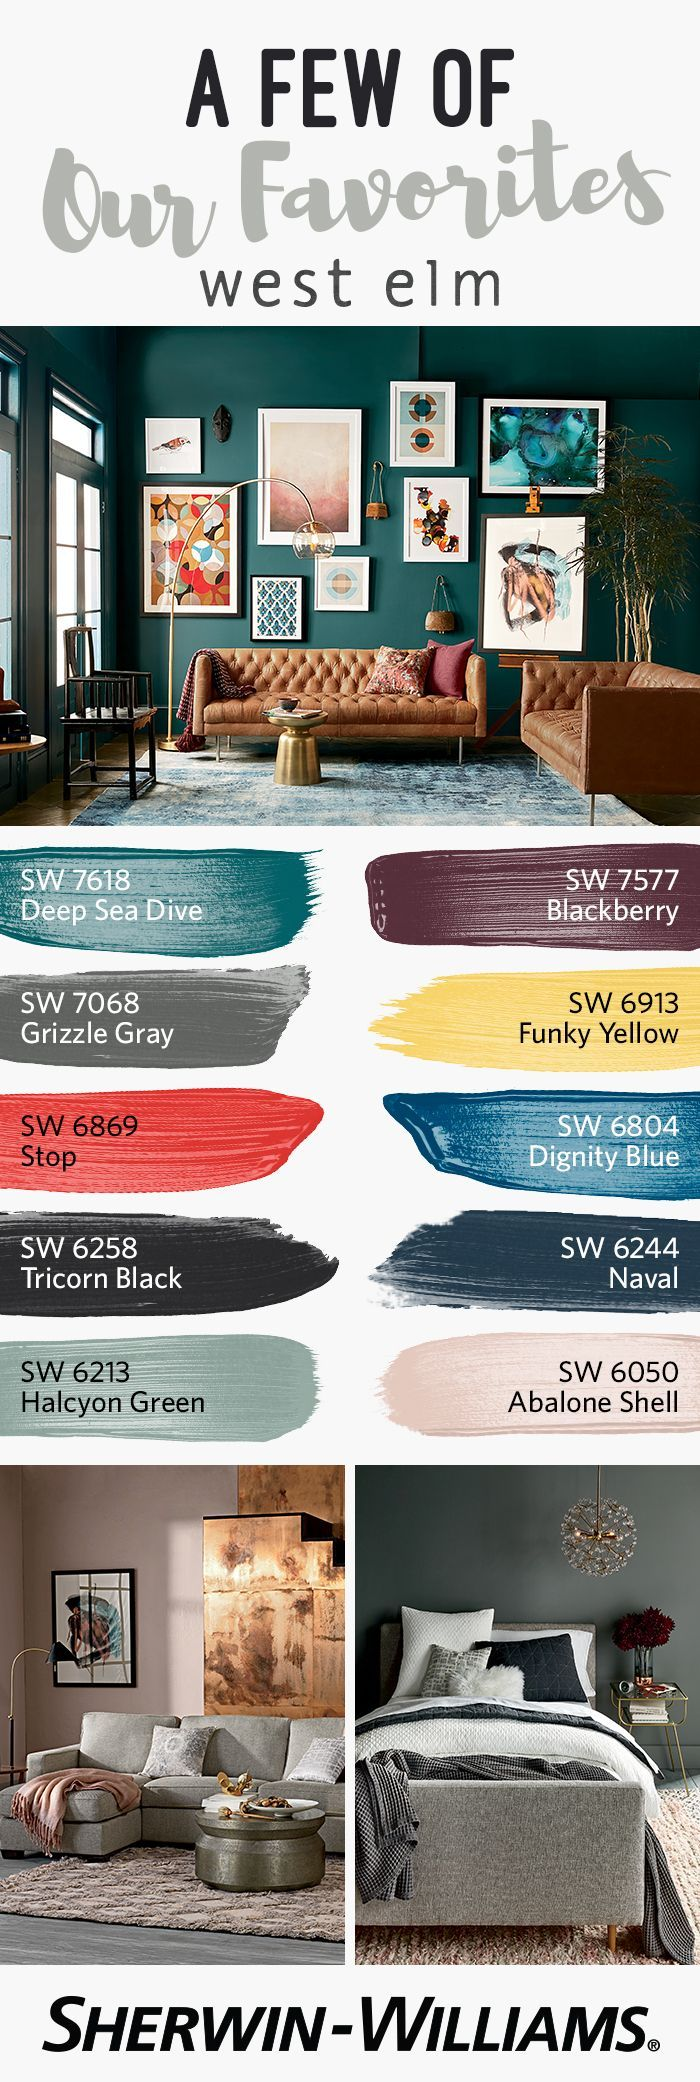 Our Fall/Winter 2016 Paint Palette From West Elm Is A Refreshingly Crisp Tackle…